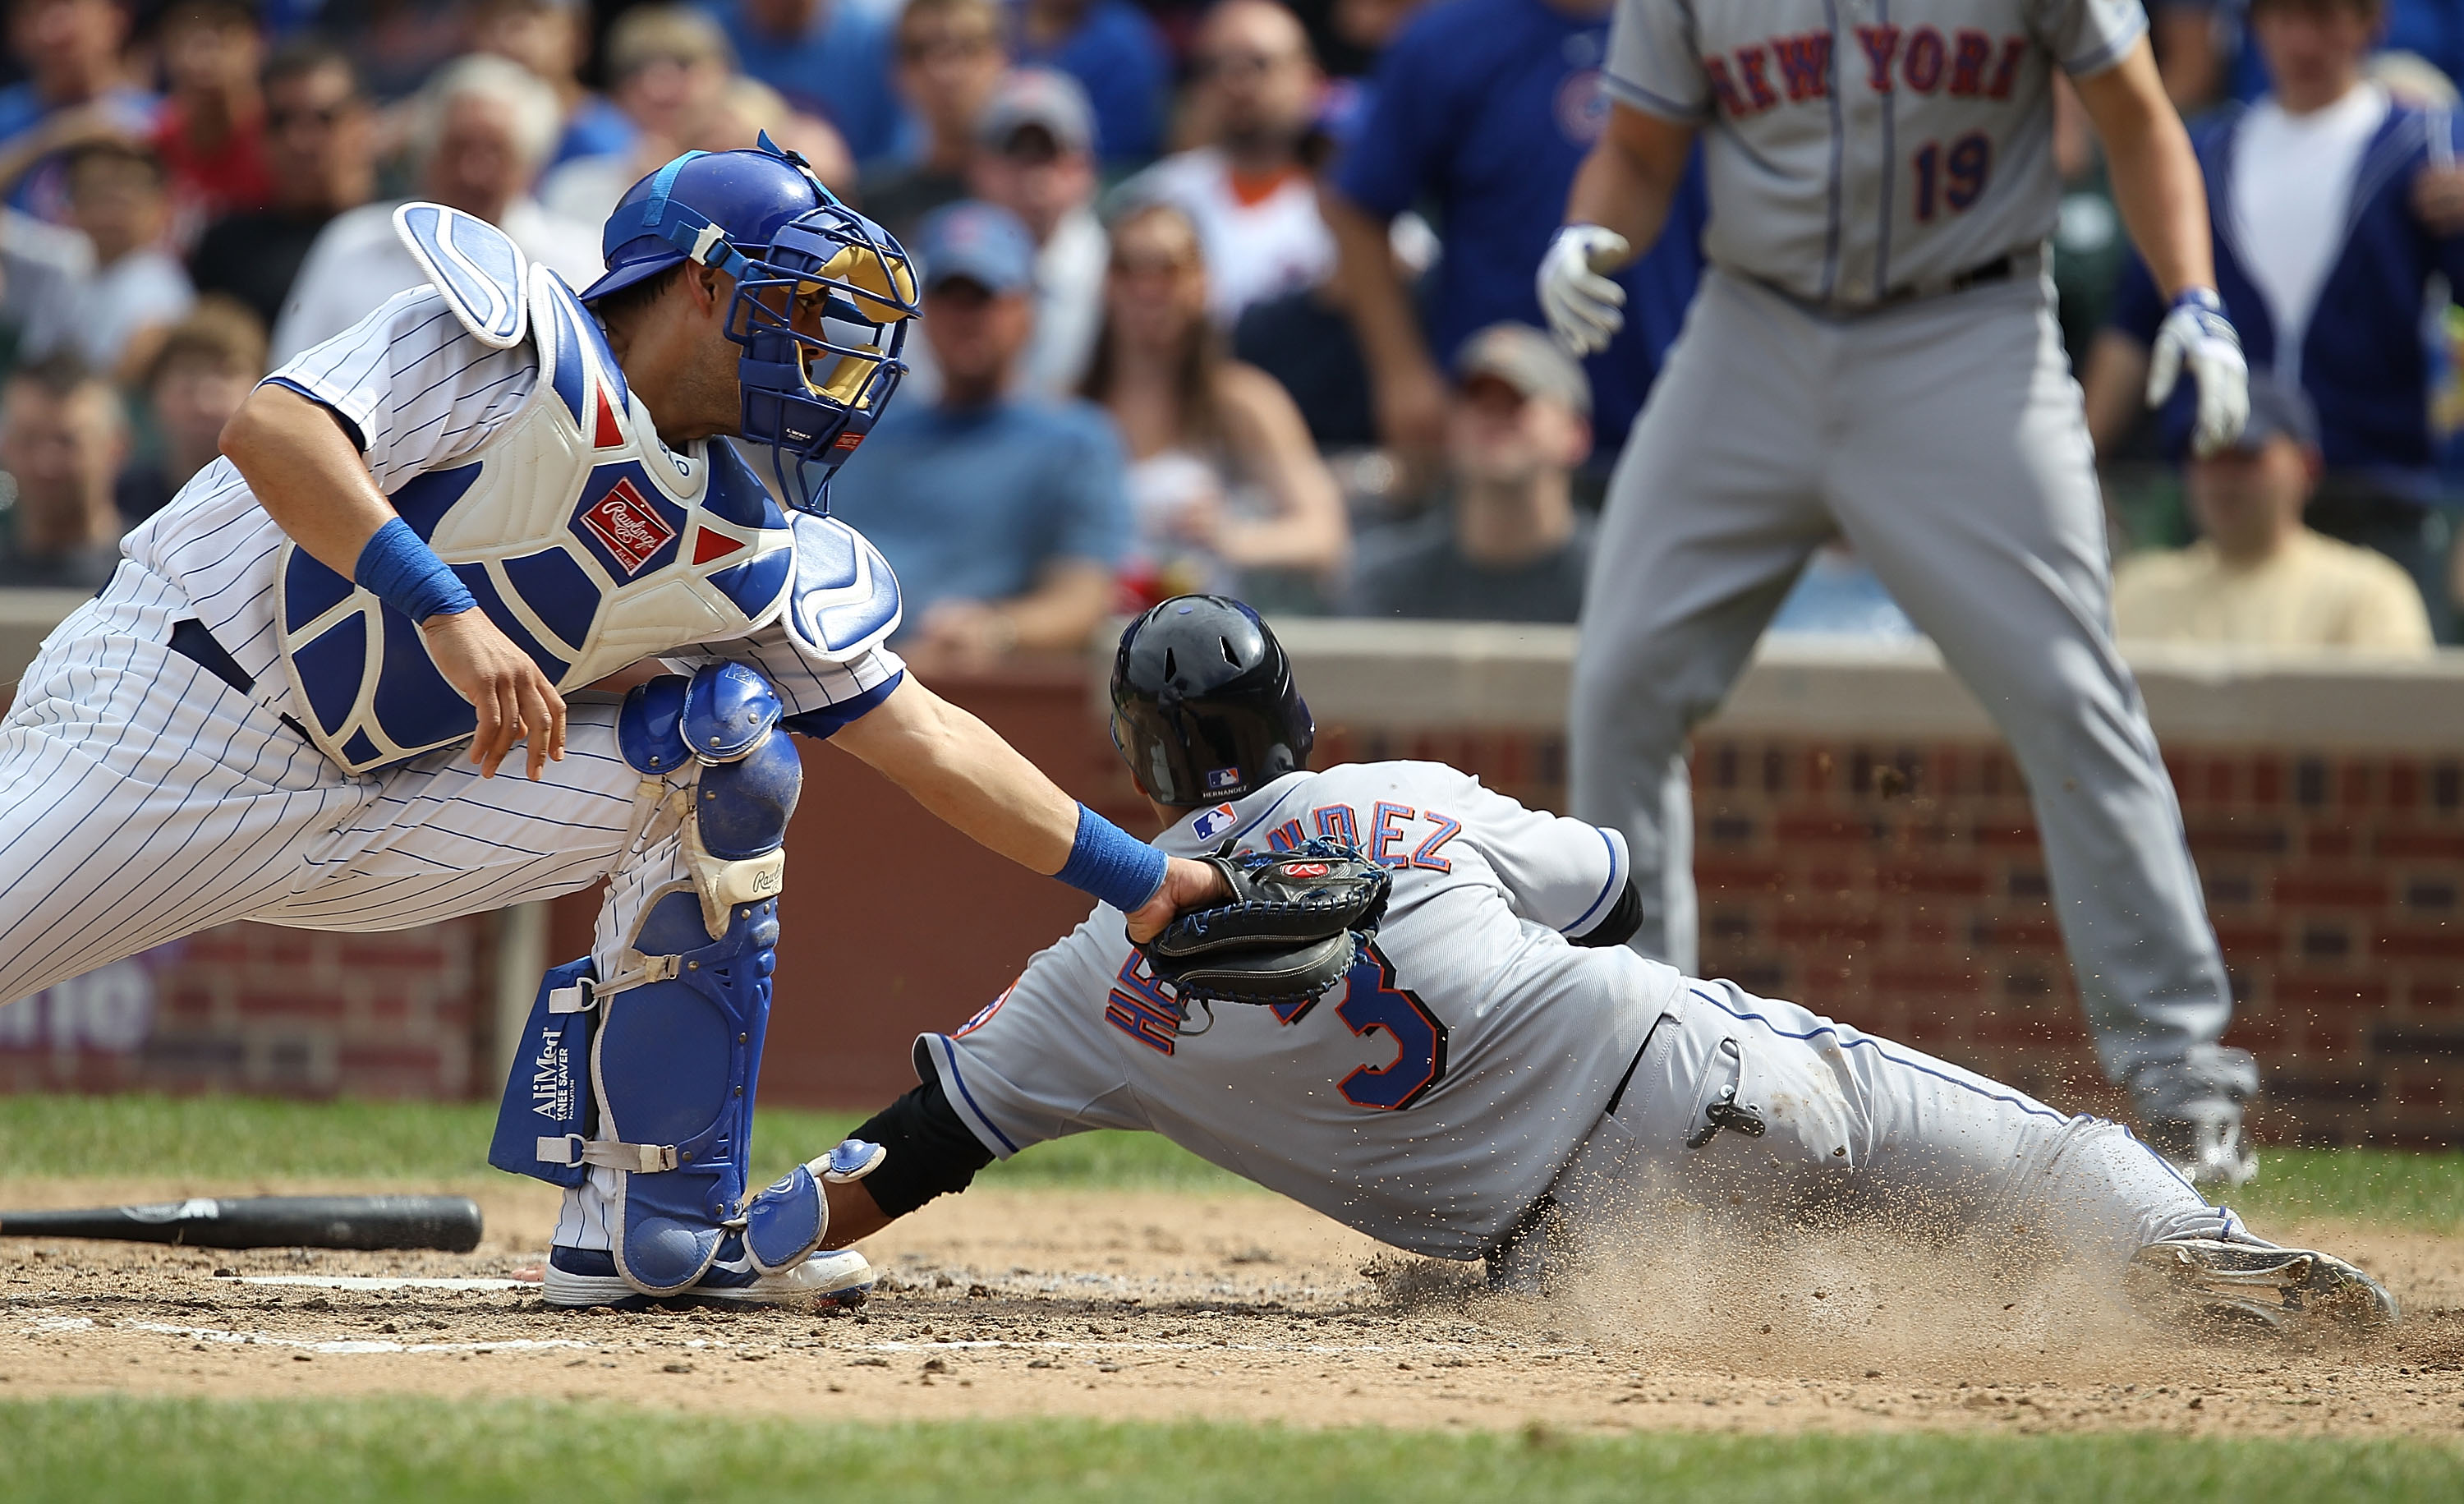 CHICAGO - SEPTEMBER 05: Luis Hernandez #3 of the New York Mets slides into home to score a run past the tag attempt of Geovany Soto #18 of the Chicago Cubs in the 5th inning at Wrigley Field on September 5, 2010 in Chicago, Illinois. (Photo by Jonathan Da